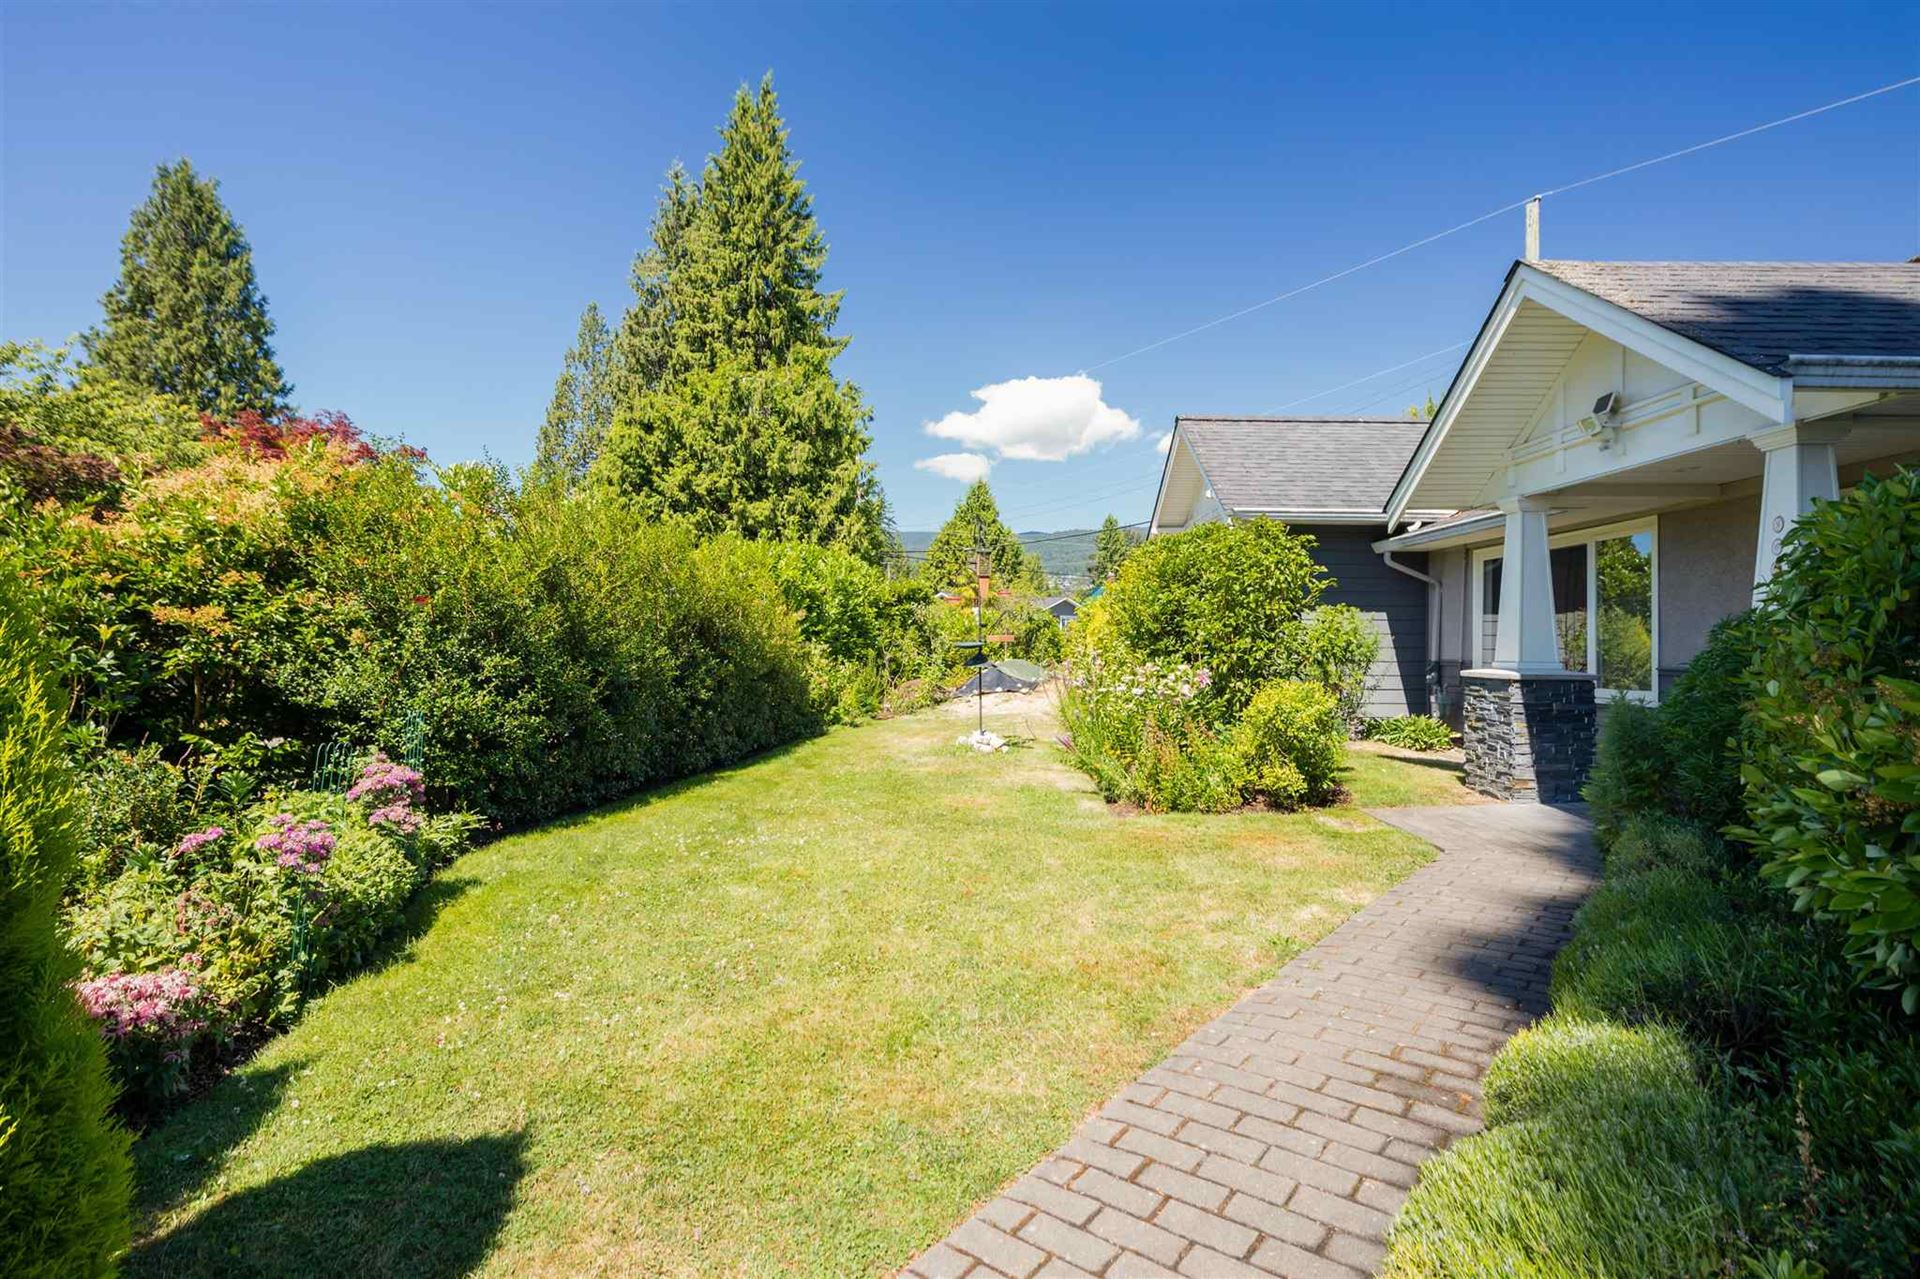 Photo of 960 W QUEENS ROAD, North Vancouver, BC V7R 1H2 (MLS # R2623308)